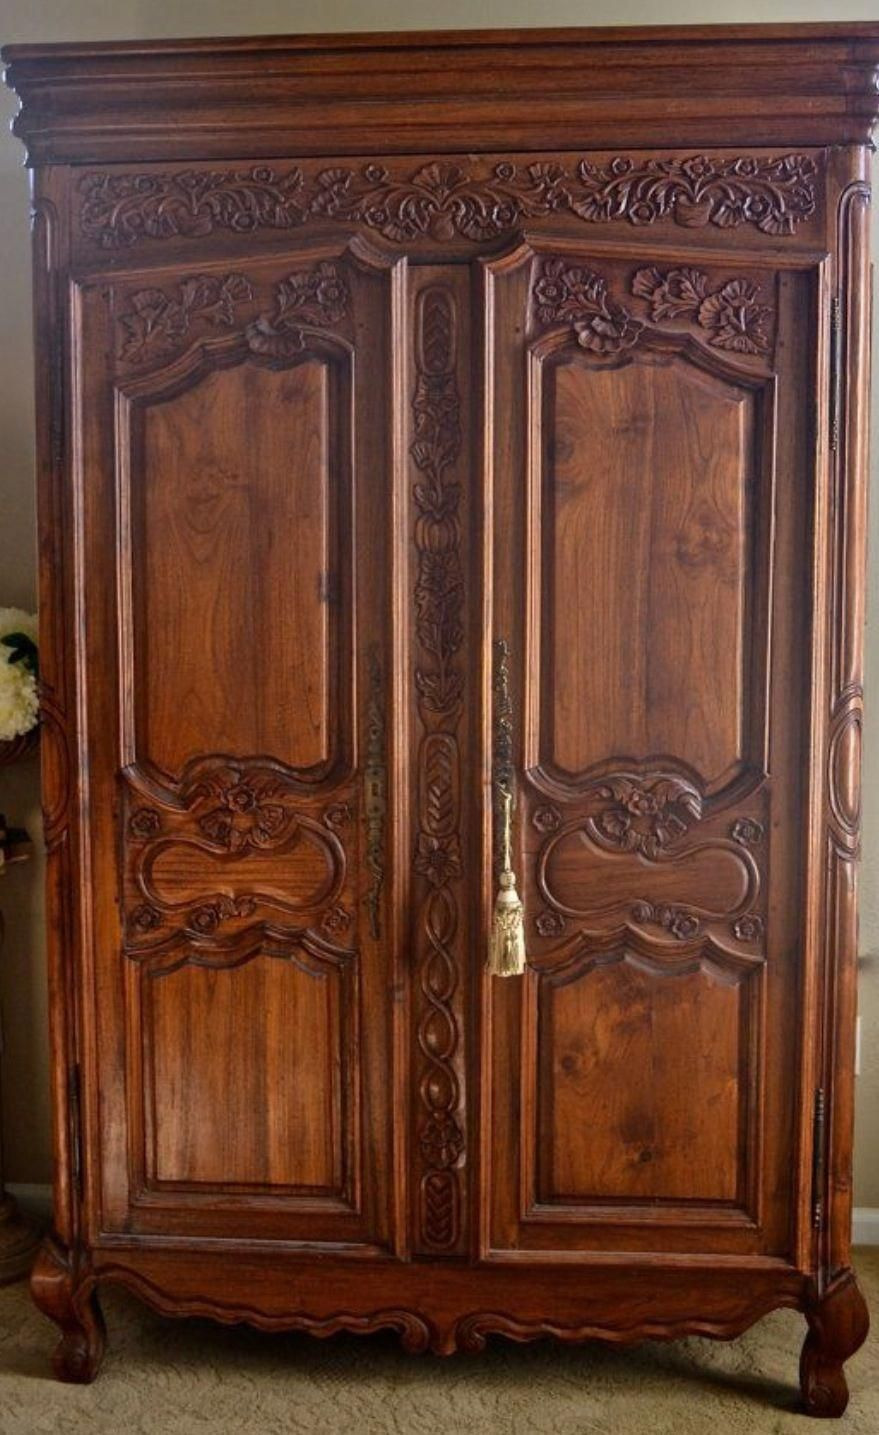 Buy and Sell Antique Furniture Luxury Antique Carved Furniture Wood Furniture Vintage